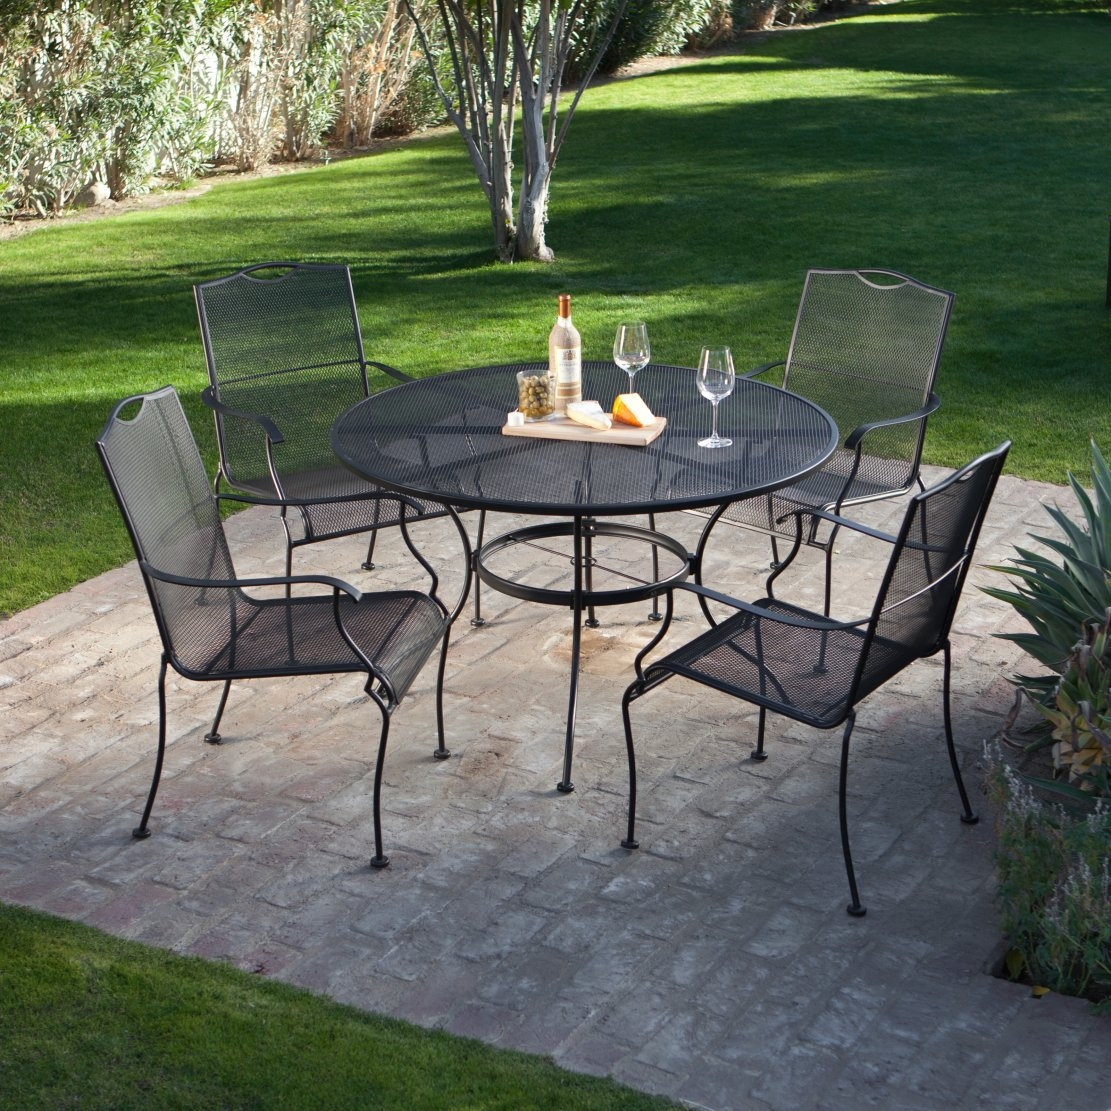 5Piece Wrought Iron Patio Furniture Dining Set Seats 4